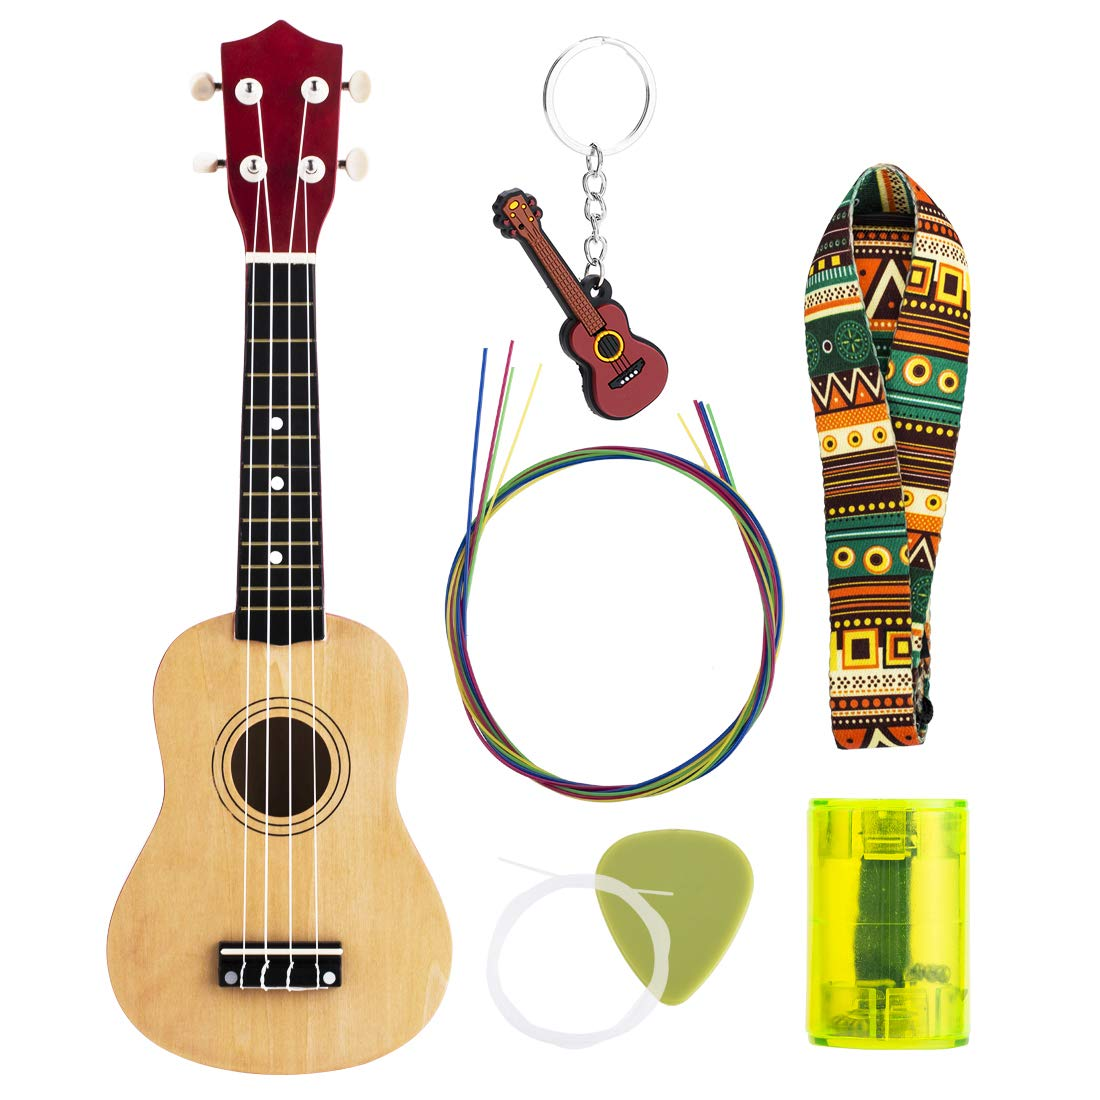 Ukulele for Beginner set 21 Inch Learn To Play : All Wood Stringed Musical Instrument with Rainbow Strings plus Replacements, Finger Shaker, Pick, Shoulder Strap and Key Chain